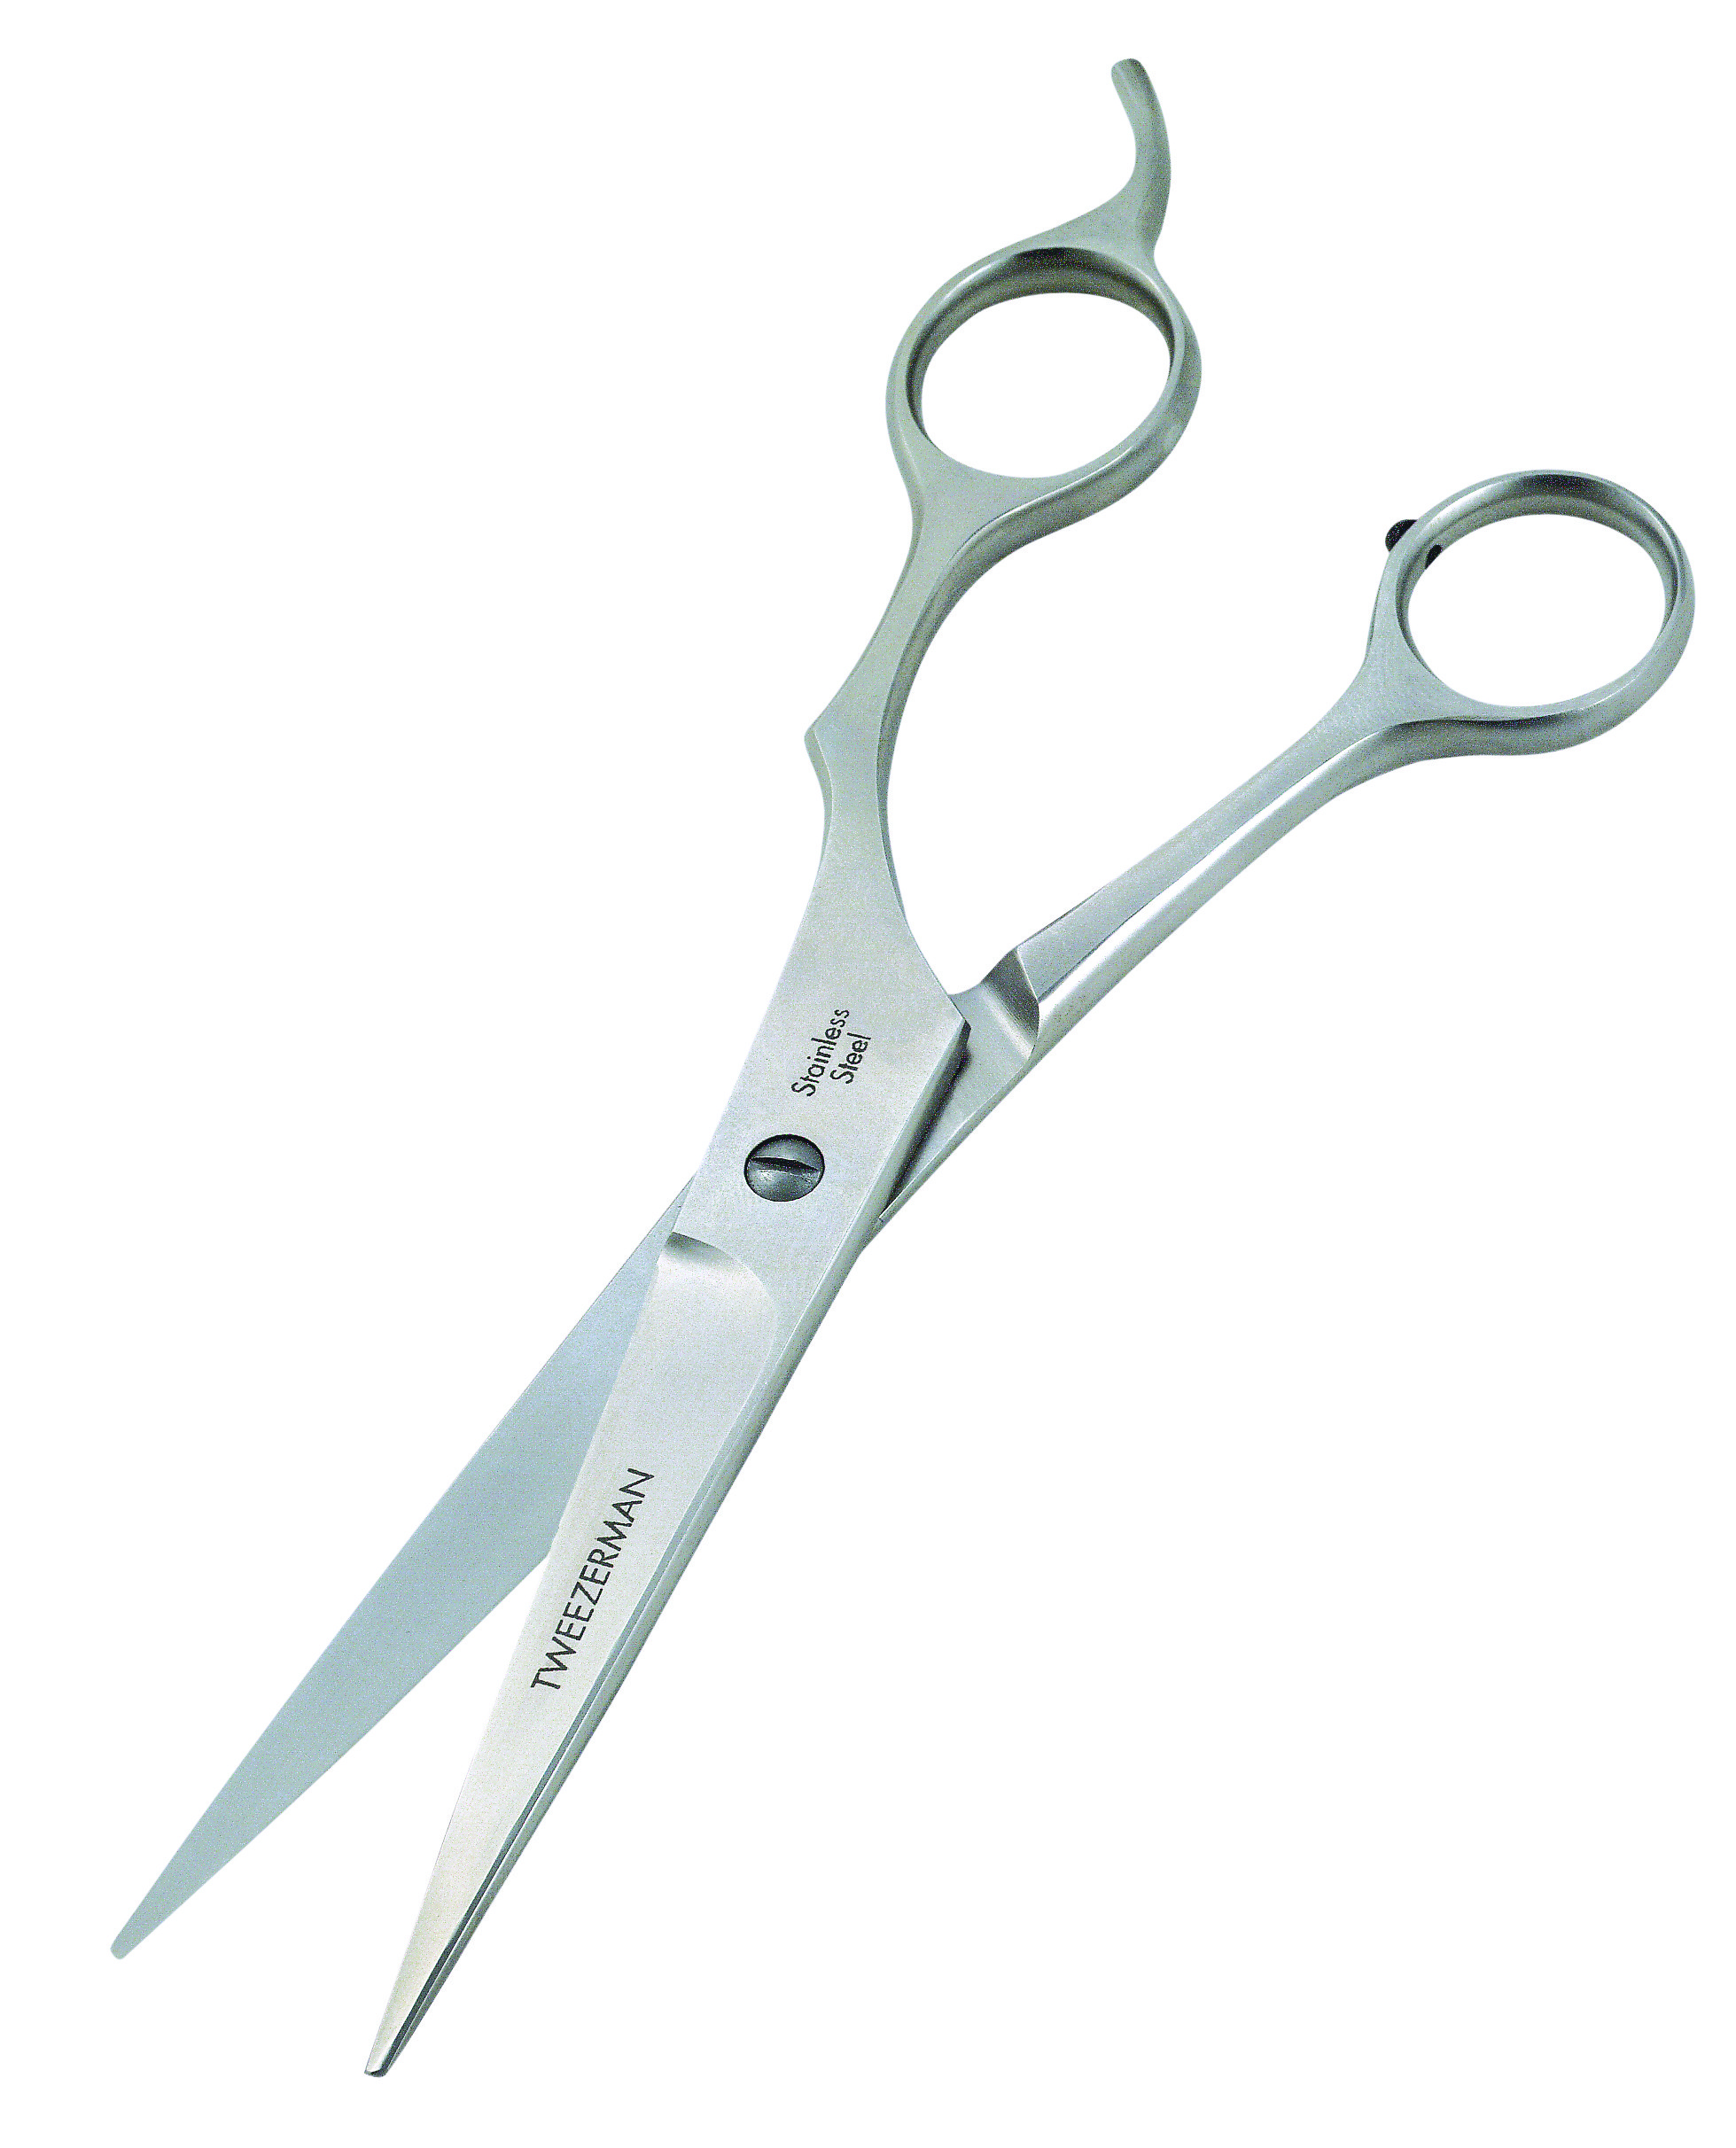 Tweezerman Stainless 2000 Shears 5-1/2'